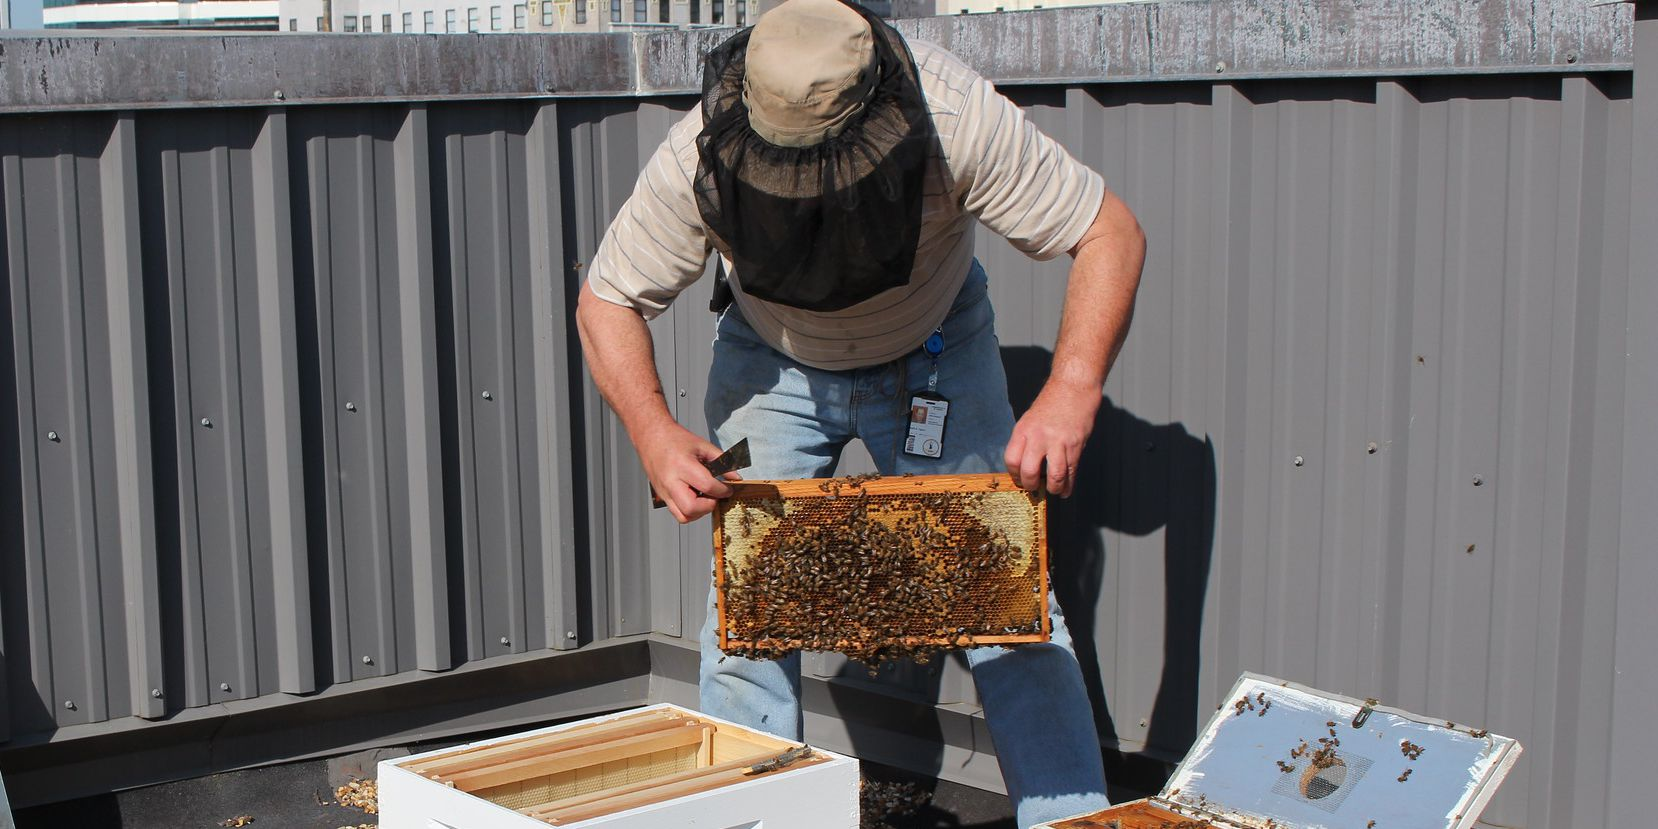 Virginia residents can get free beehives